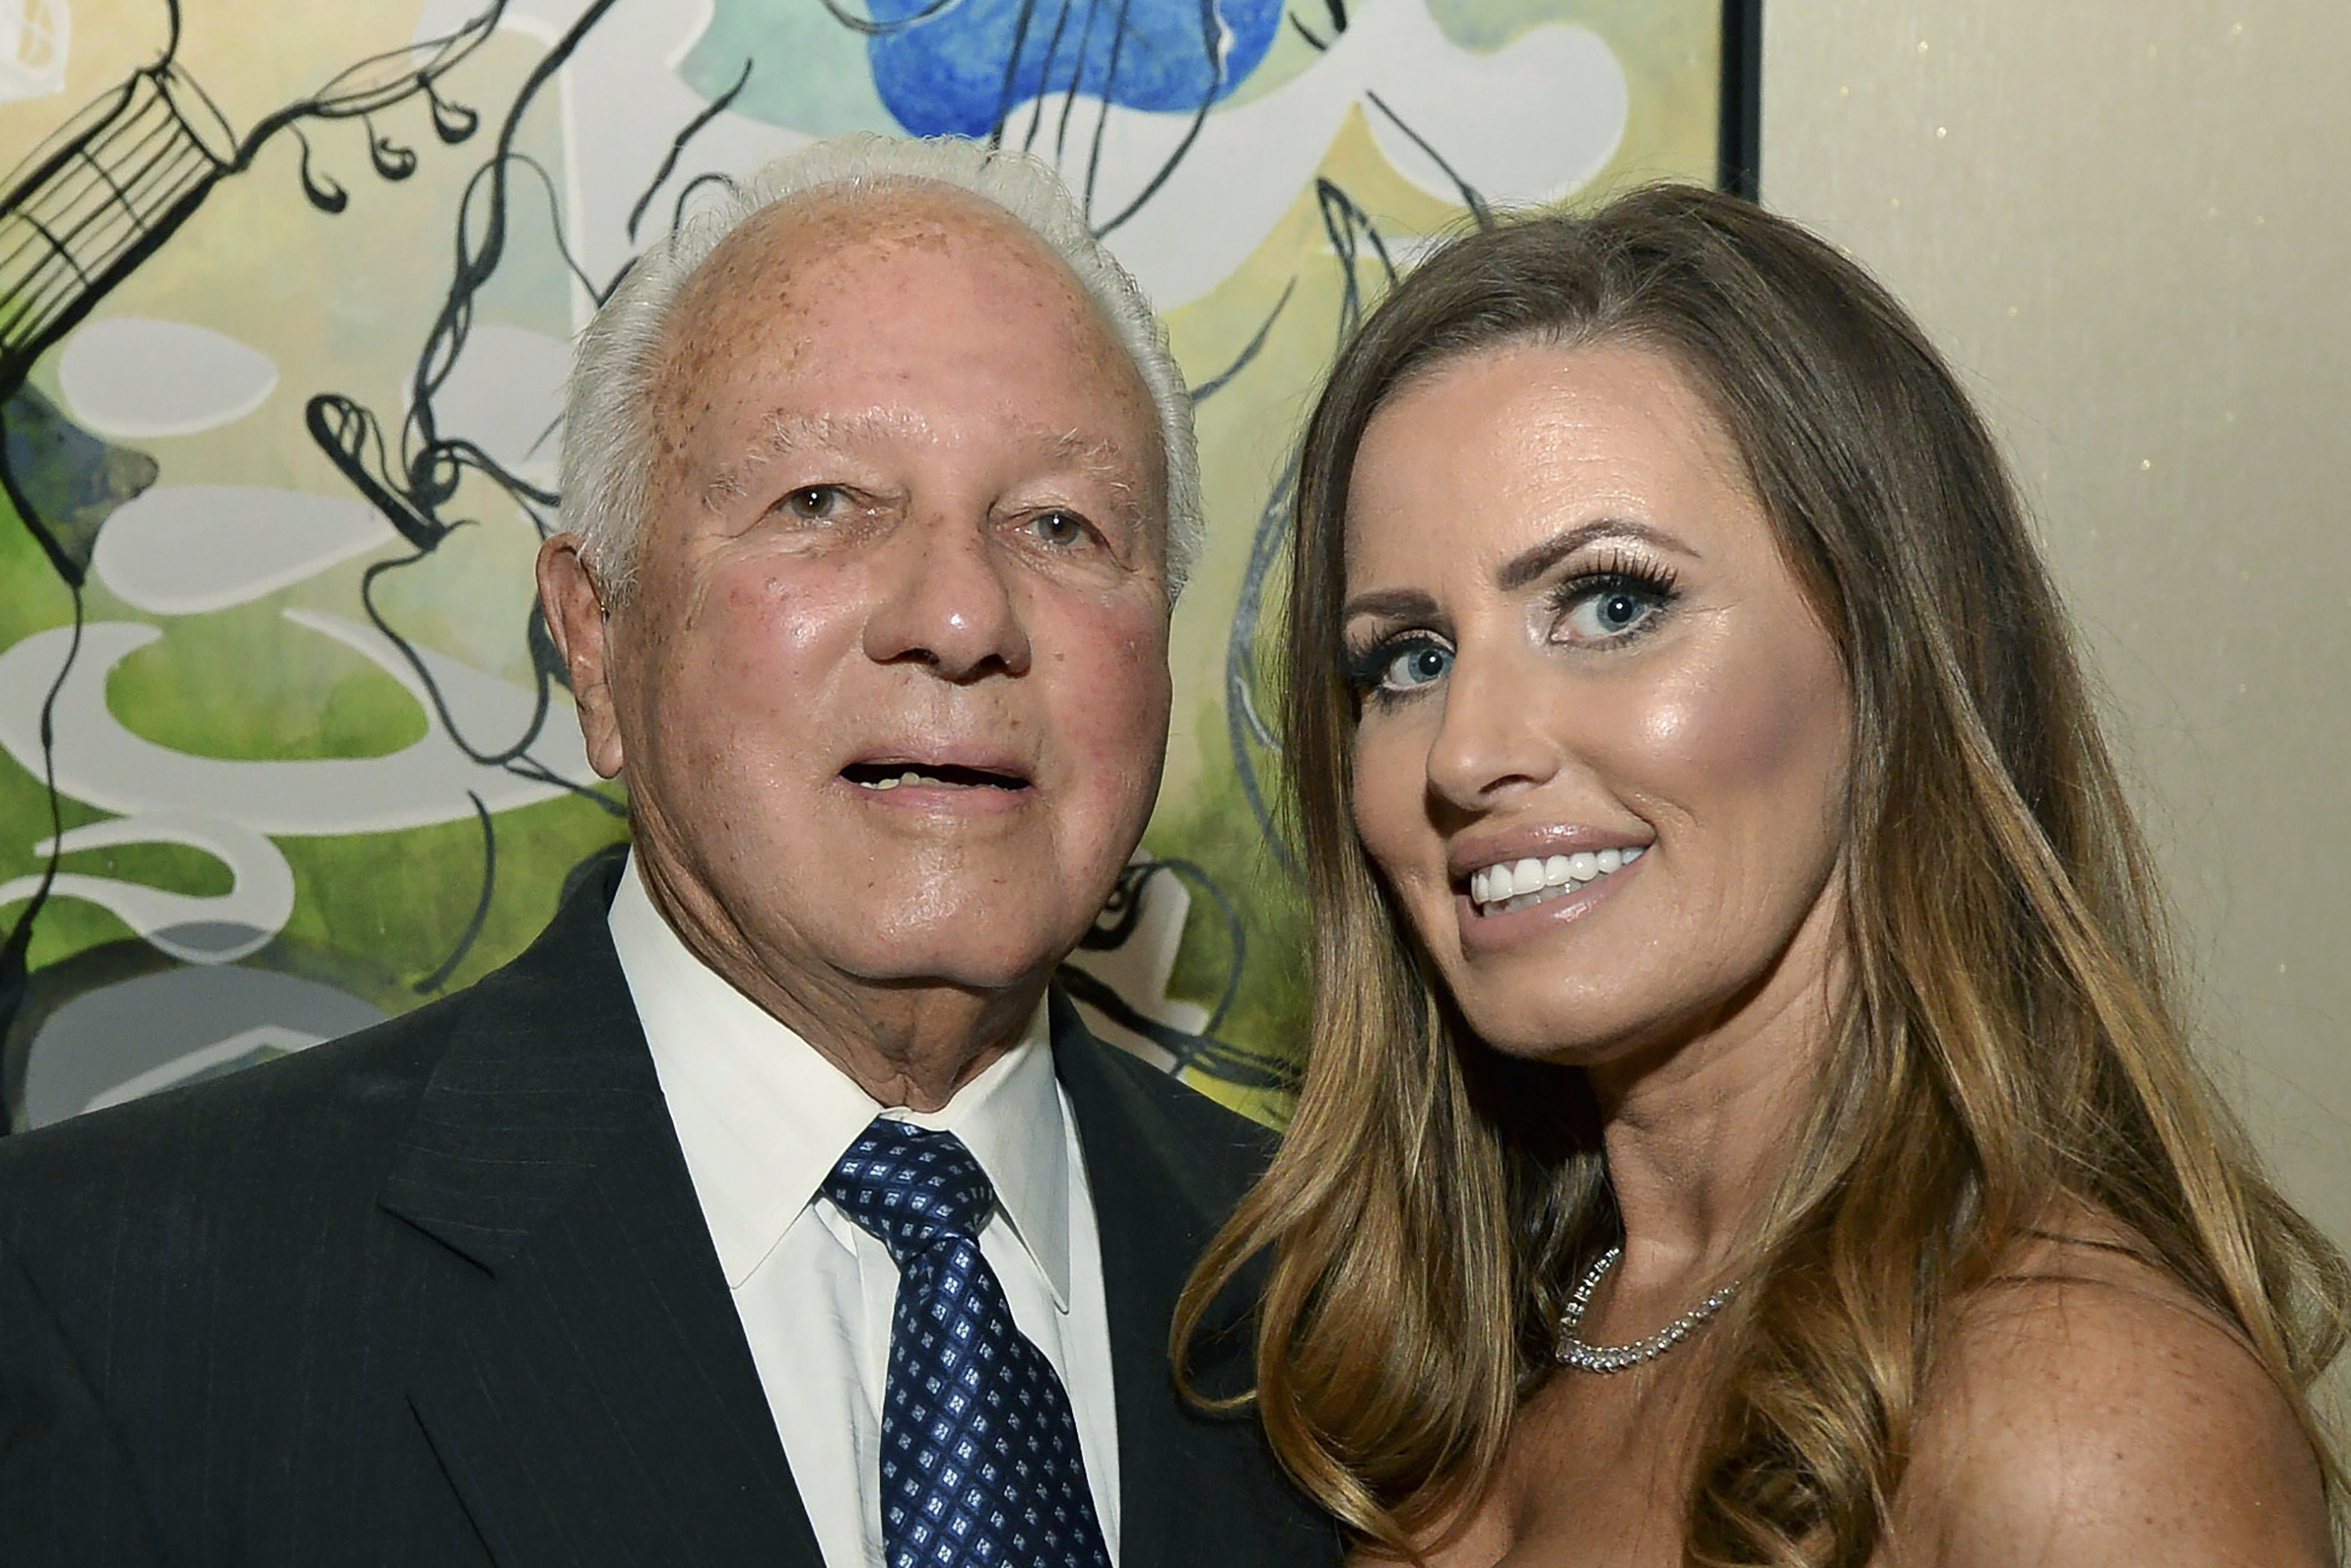 Former Louisiana Gov. Edwin Edwards, left, celebrates his 90th birthday with his wife, Trina Edwards, at the Renaissance Hotel in Baton Rouge, La., in this Aug. 12, 2017, file photo.